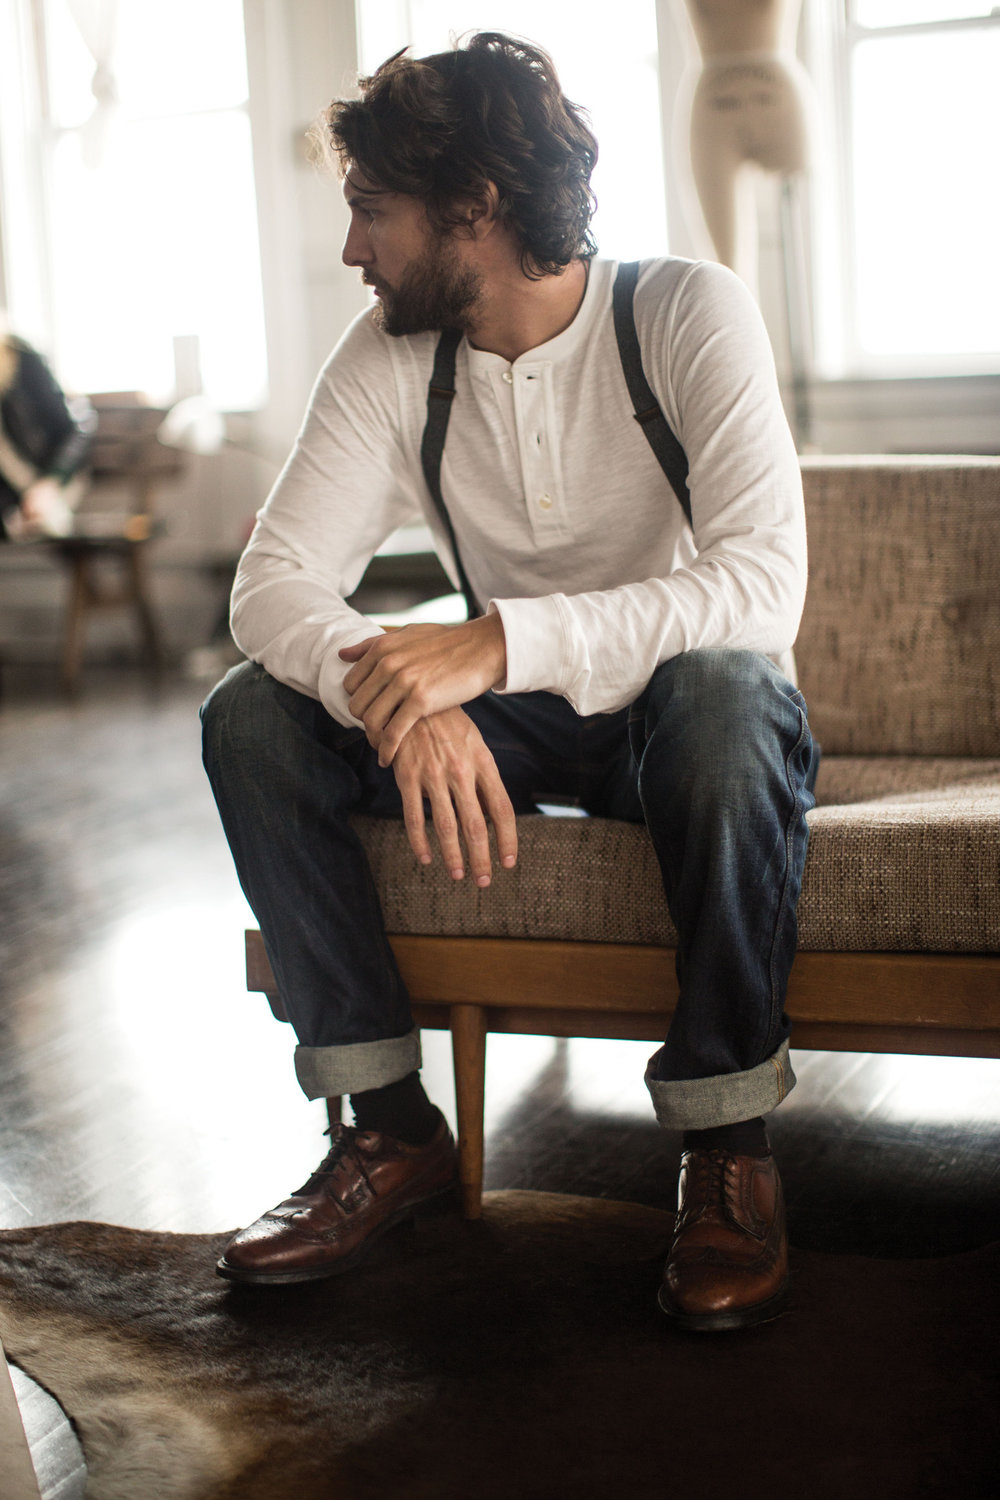 white-henley-shirt-navy-jeans-brown-leather-brogues-original-491.jpg